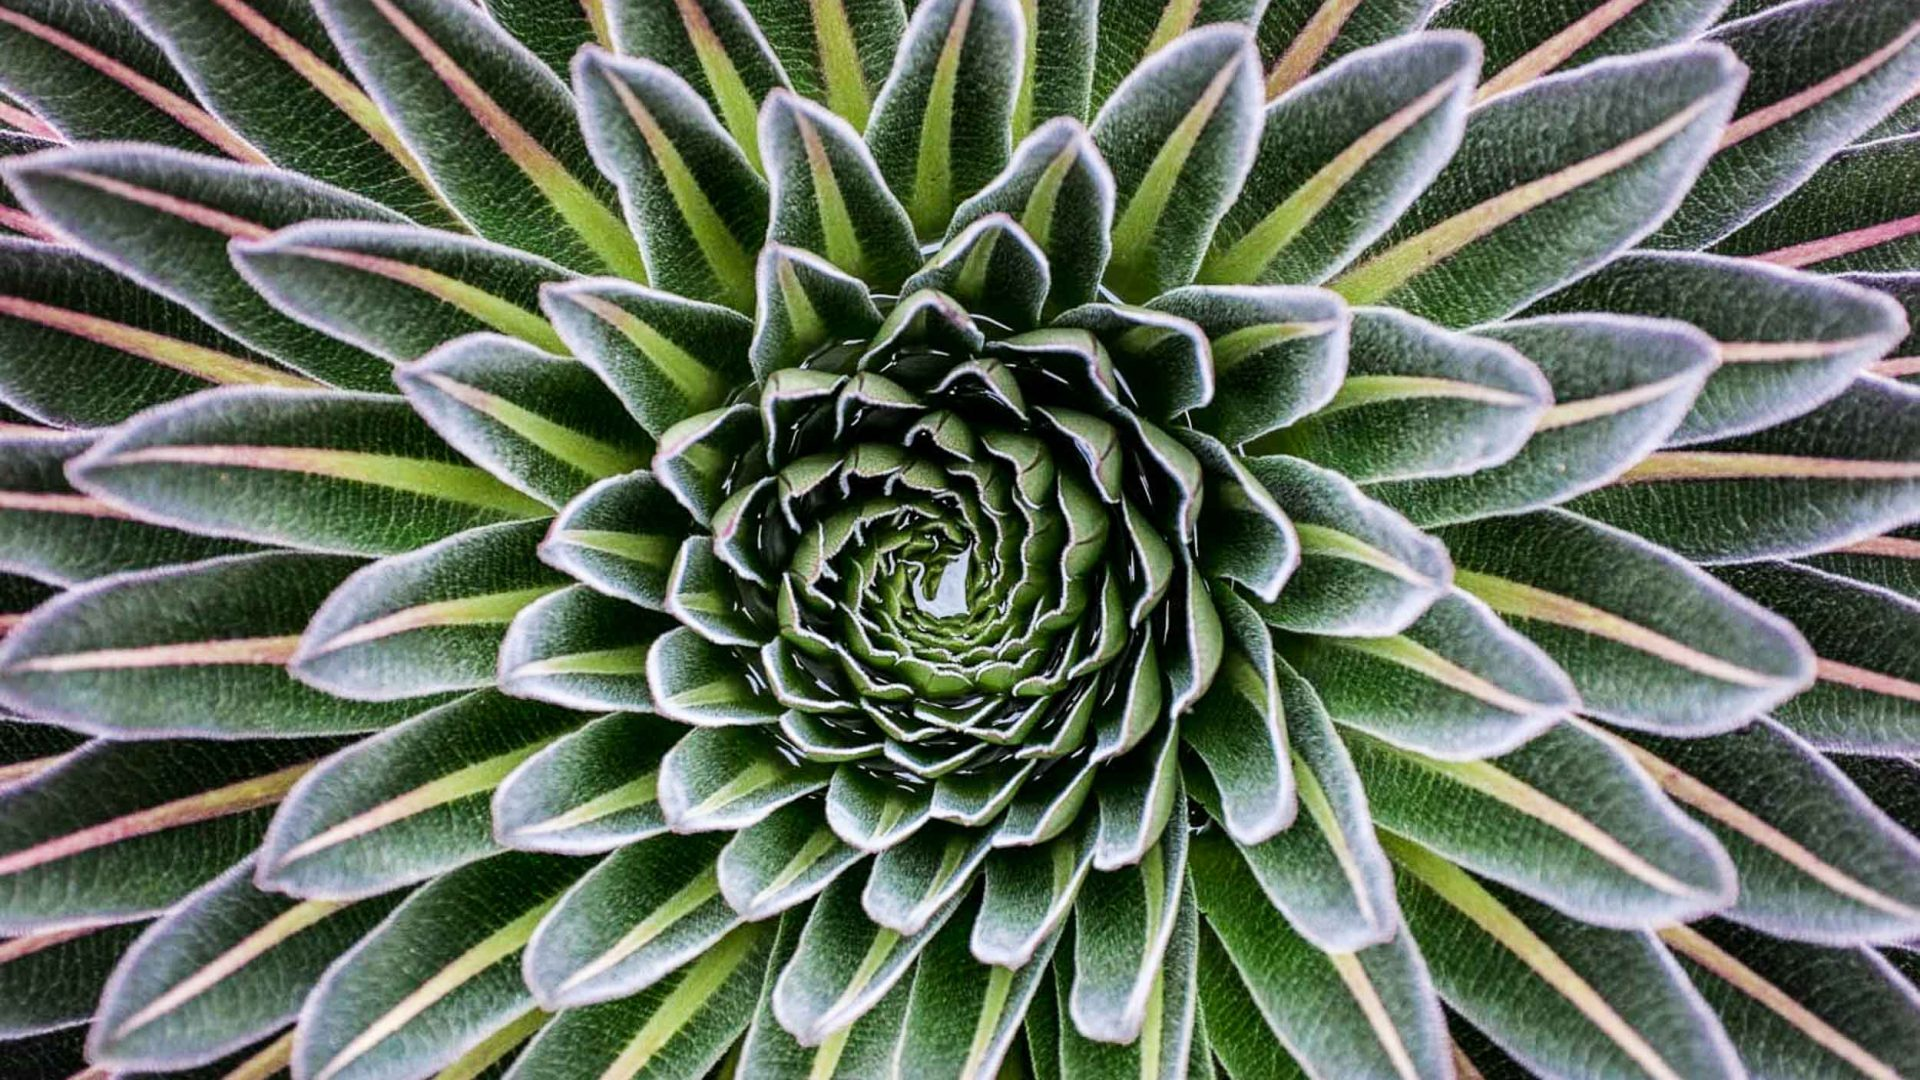 A plant's symmetry catches the eye during the hike of the Rwenzori Mountains in Uganda.